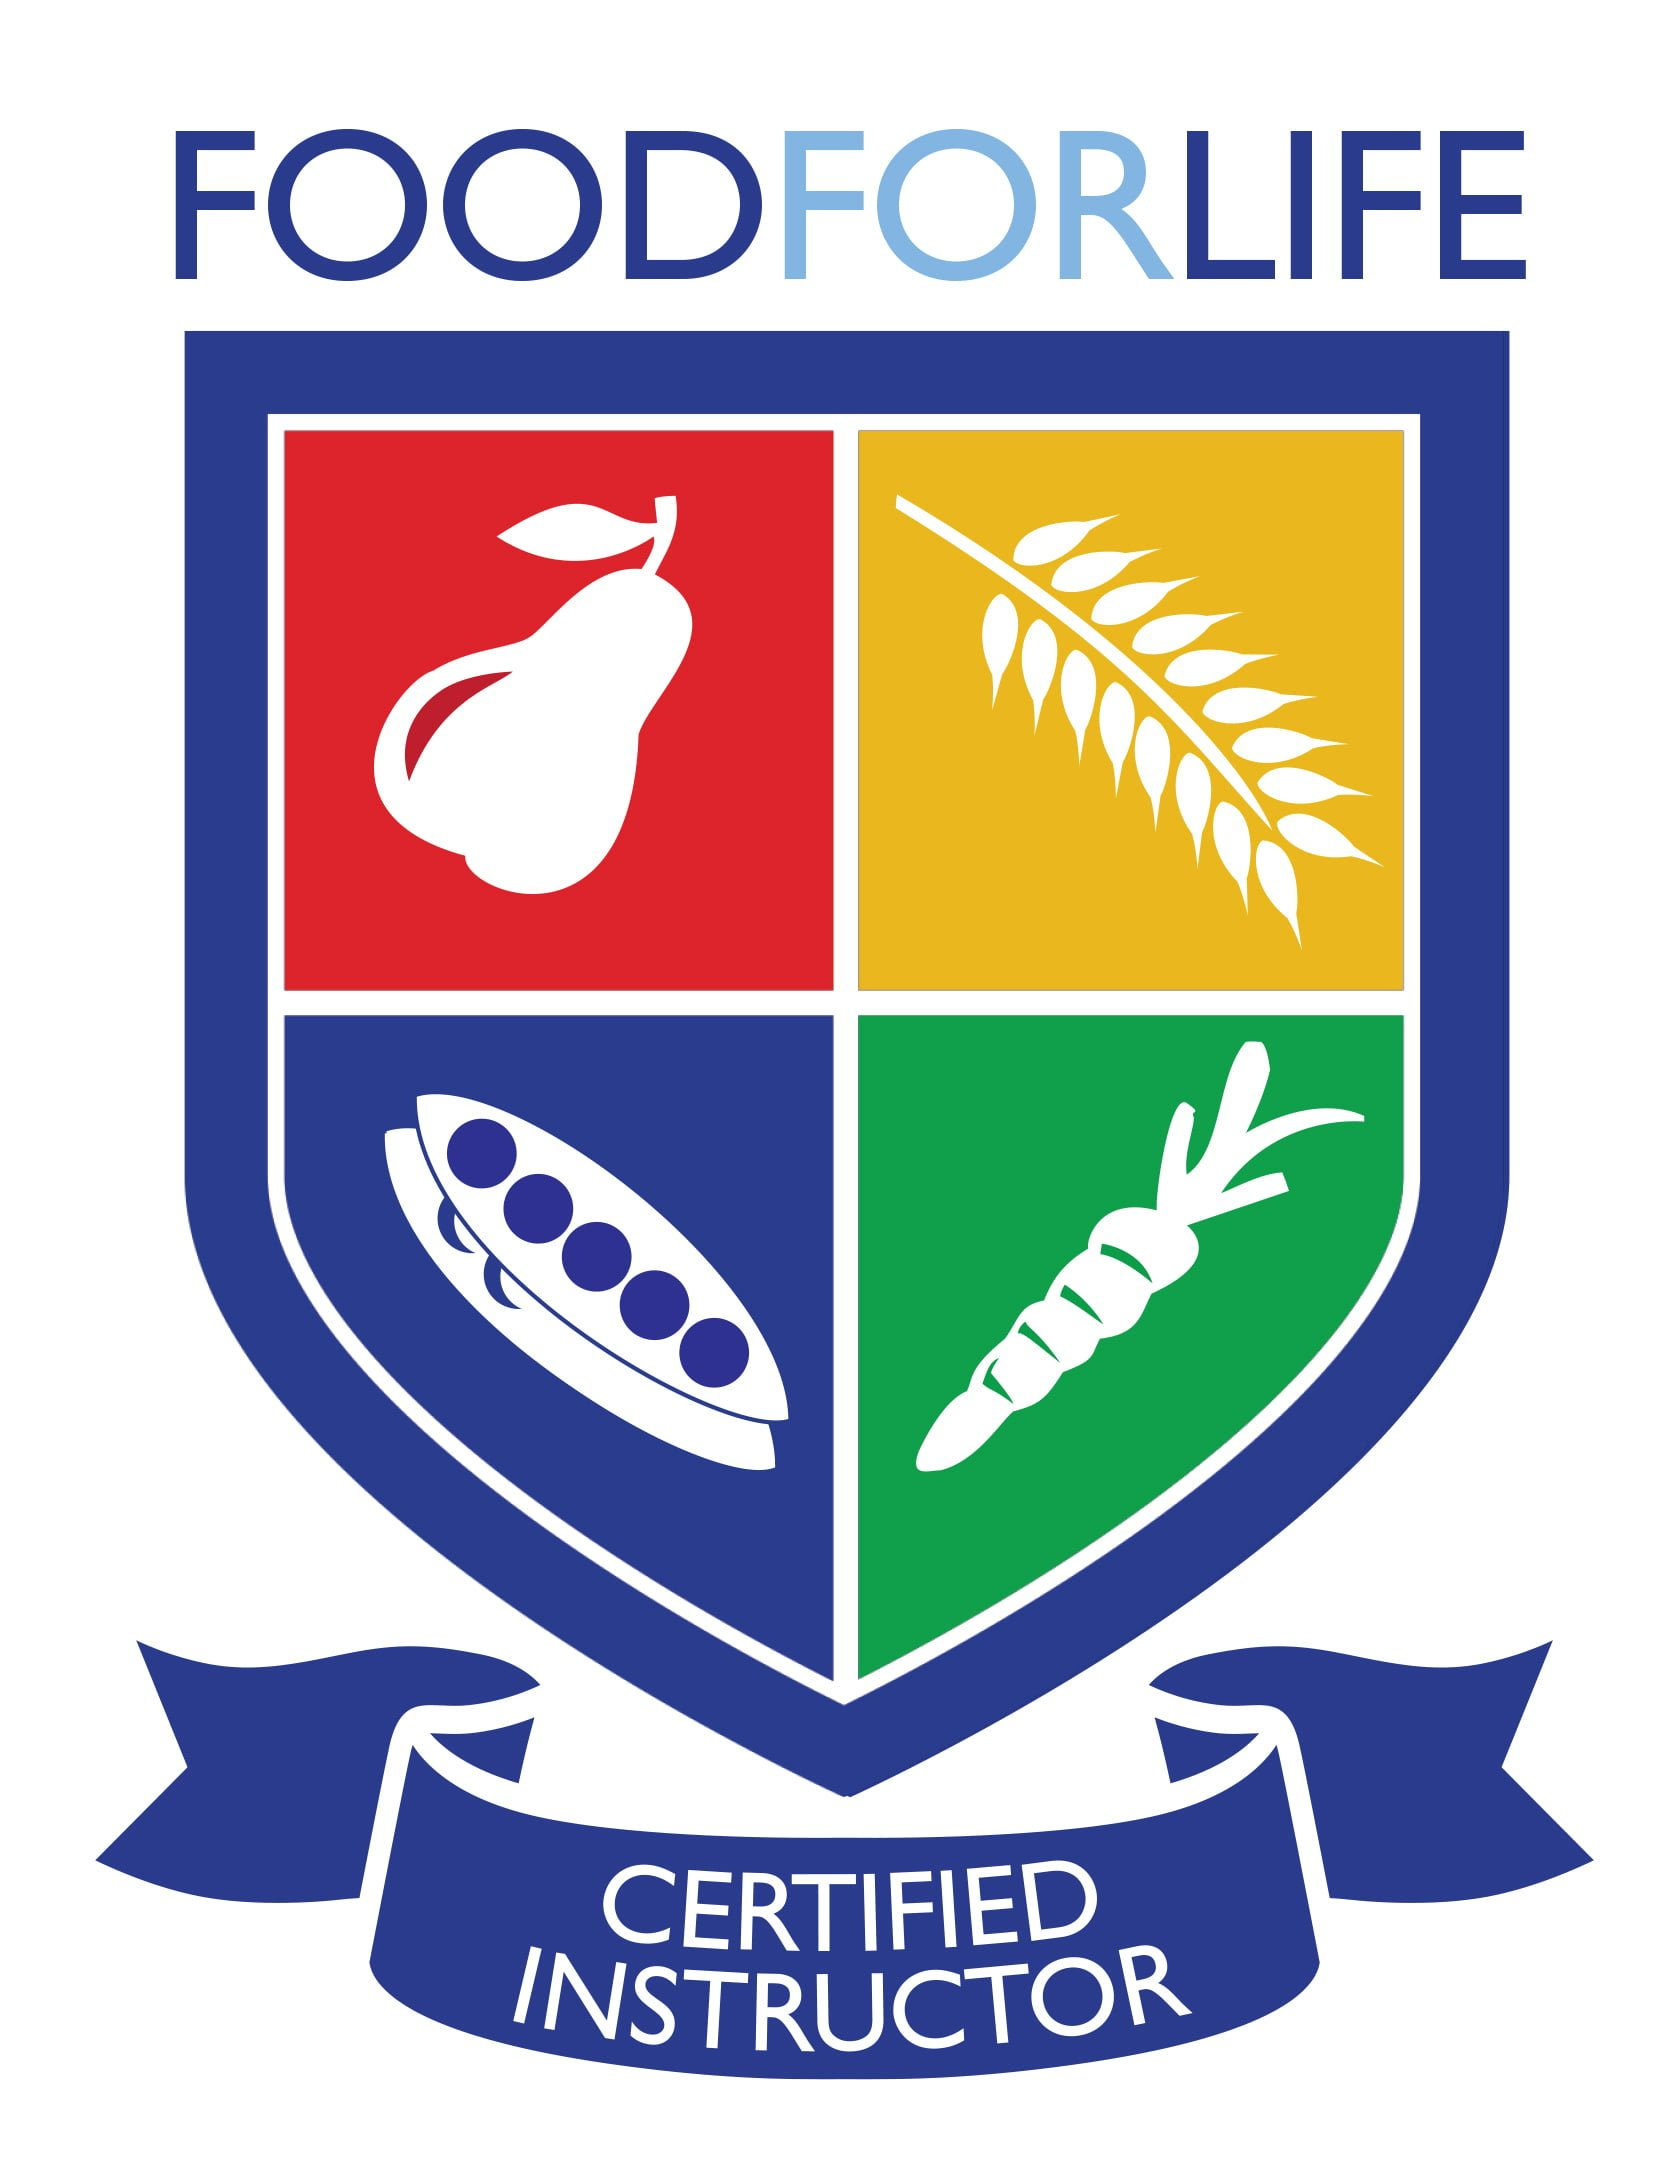 https://trimazing.com/wp-content/uploads/2019/01/FoodforLifeCertifiedInstructorLogo.jpg